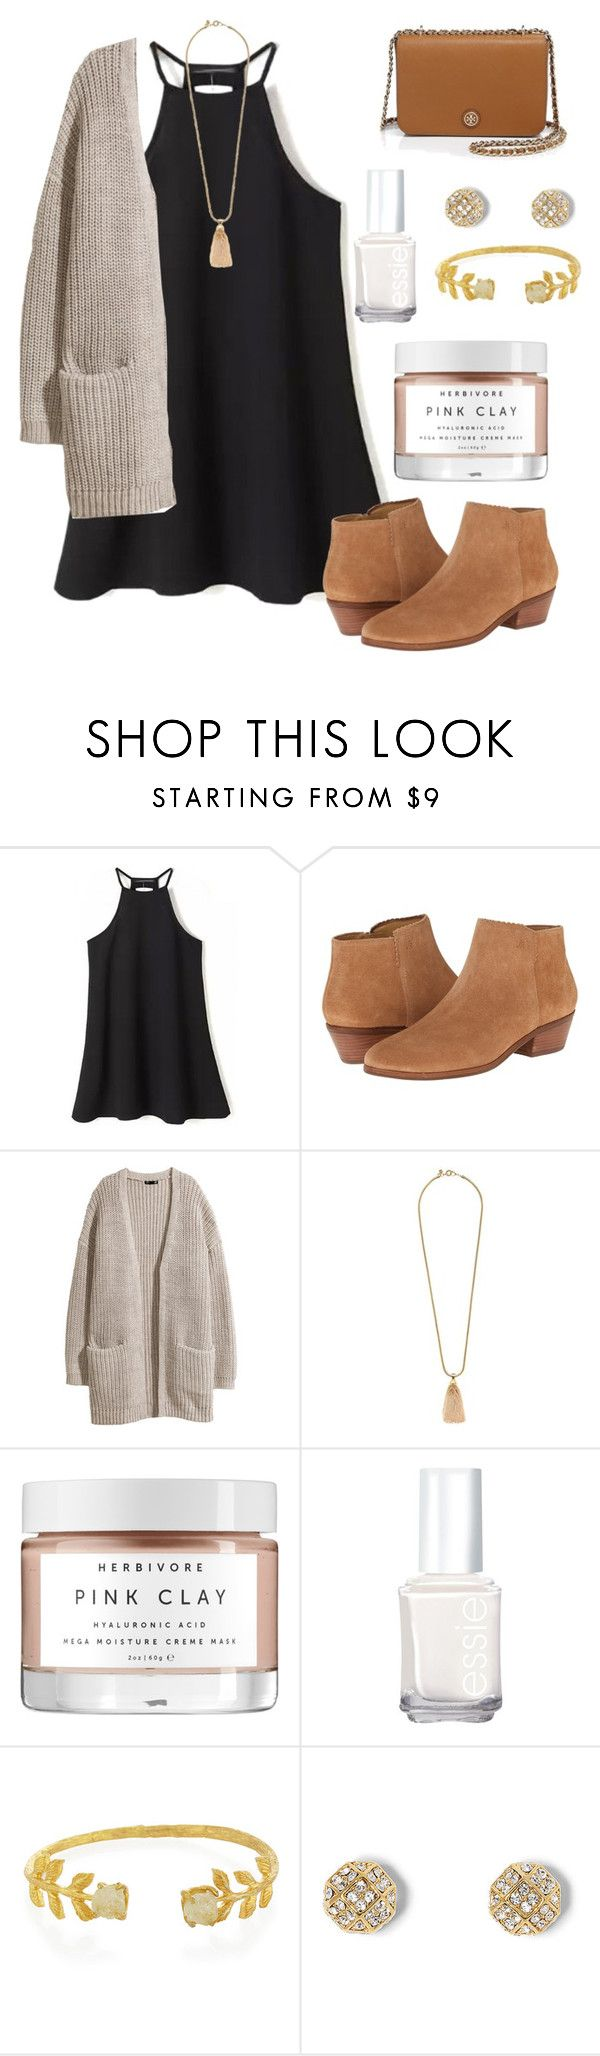 """""""I want you to want me"""" by madelyn-abigail ❤ liked on Polyvore featuring moda, Jack Rogers, H&M, J.Crew, Essie, NAKAMOL, Vince Camuto, Tory Burch, women's clothing e women's fashion"""